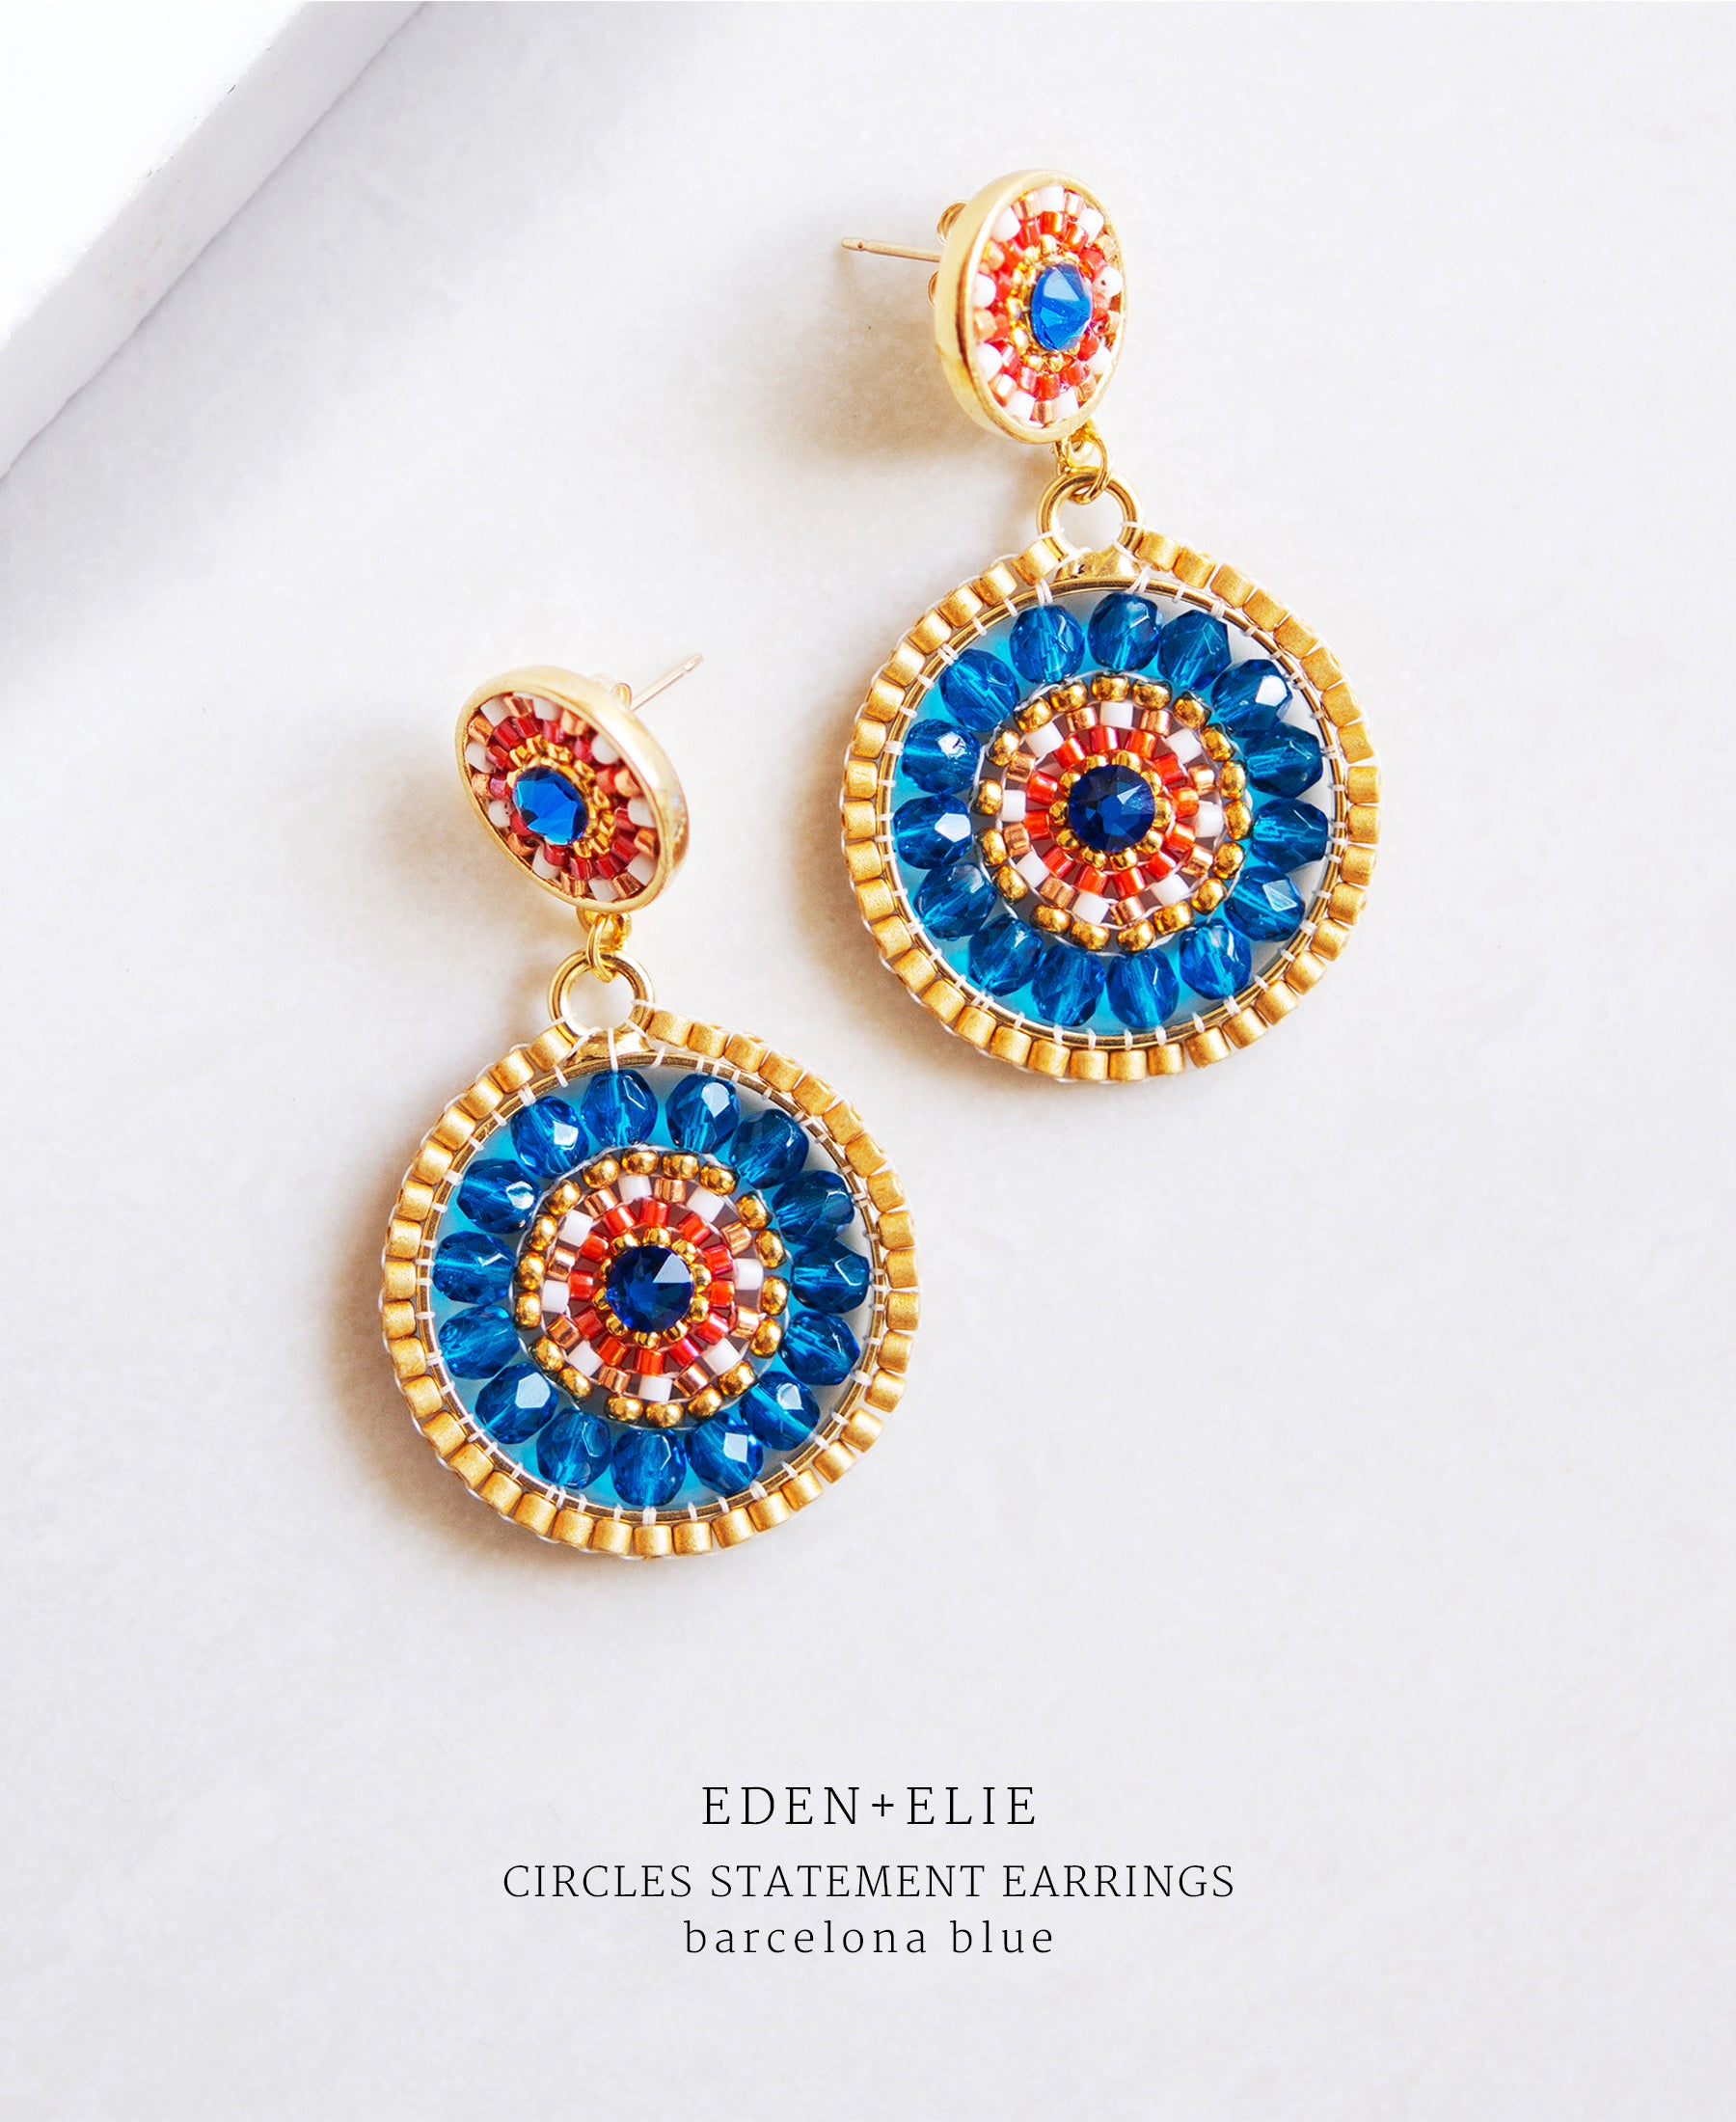 EDEN + ELIE double circle statement drop earrings - barcelona blue